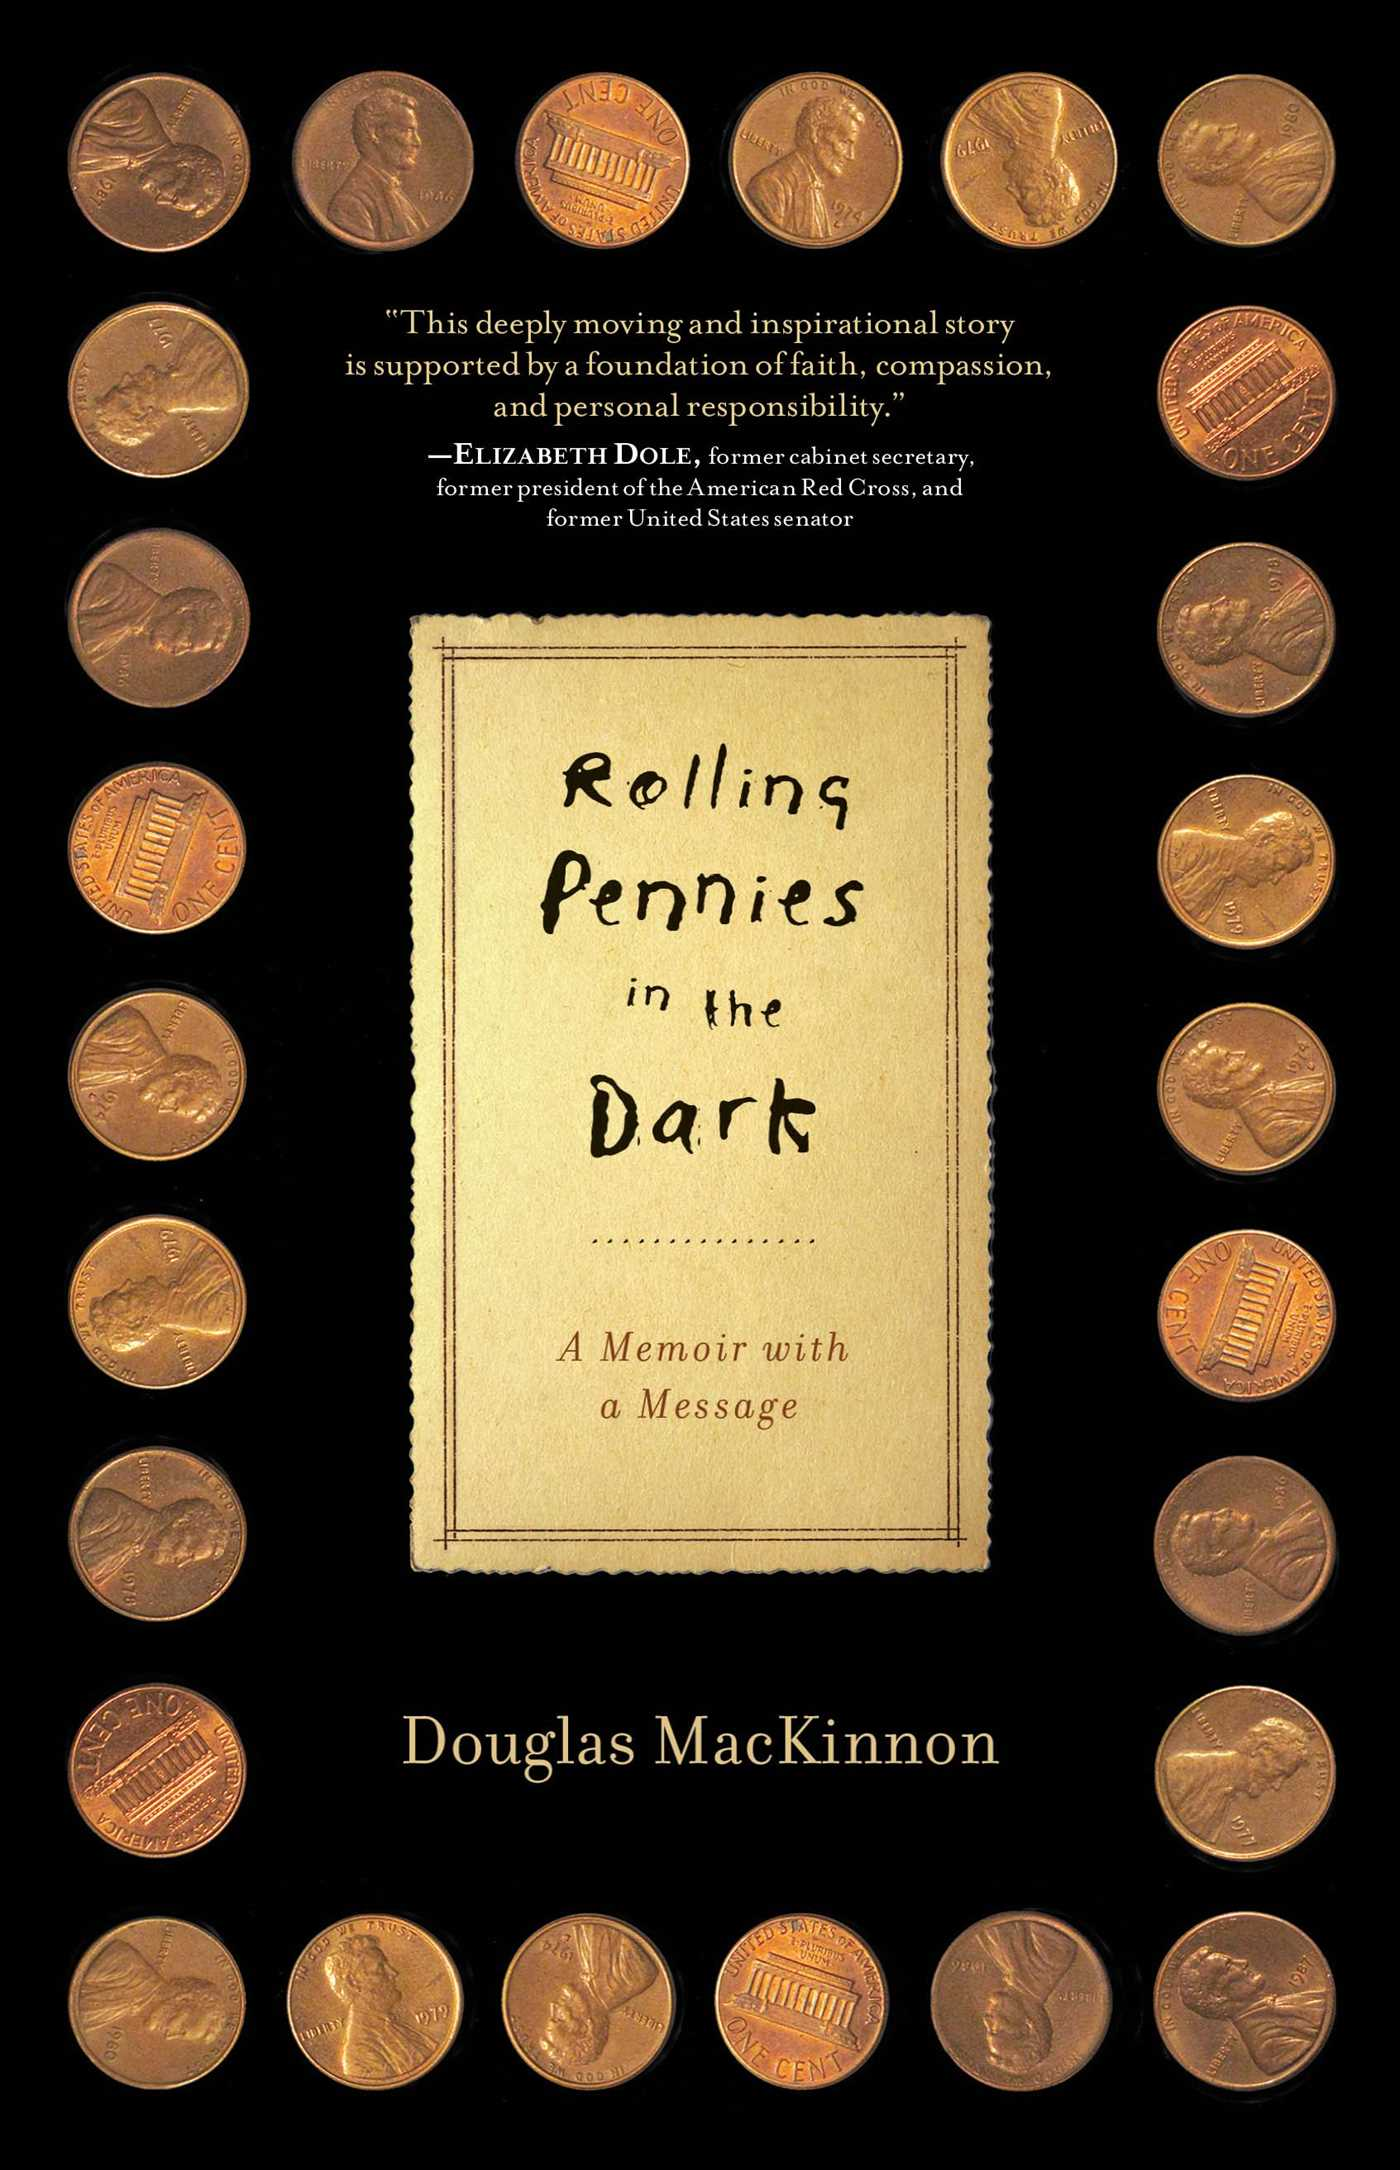 Rolling-pennies-in-the-dark-9781451607895_hr